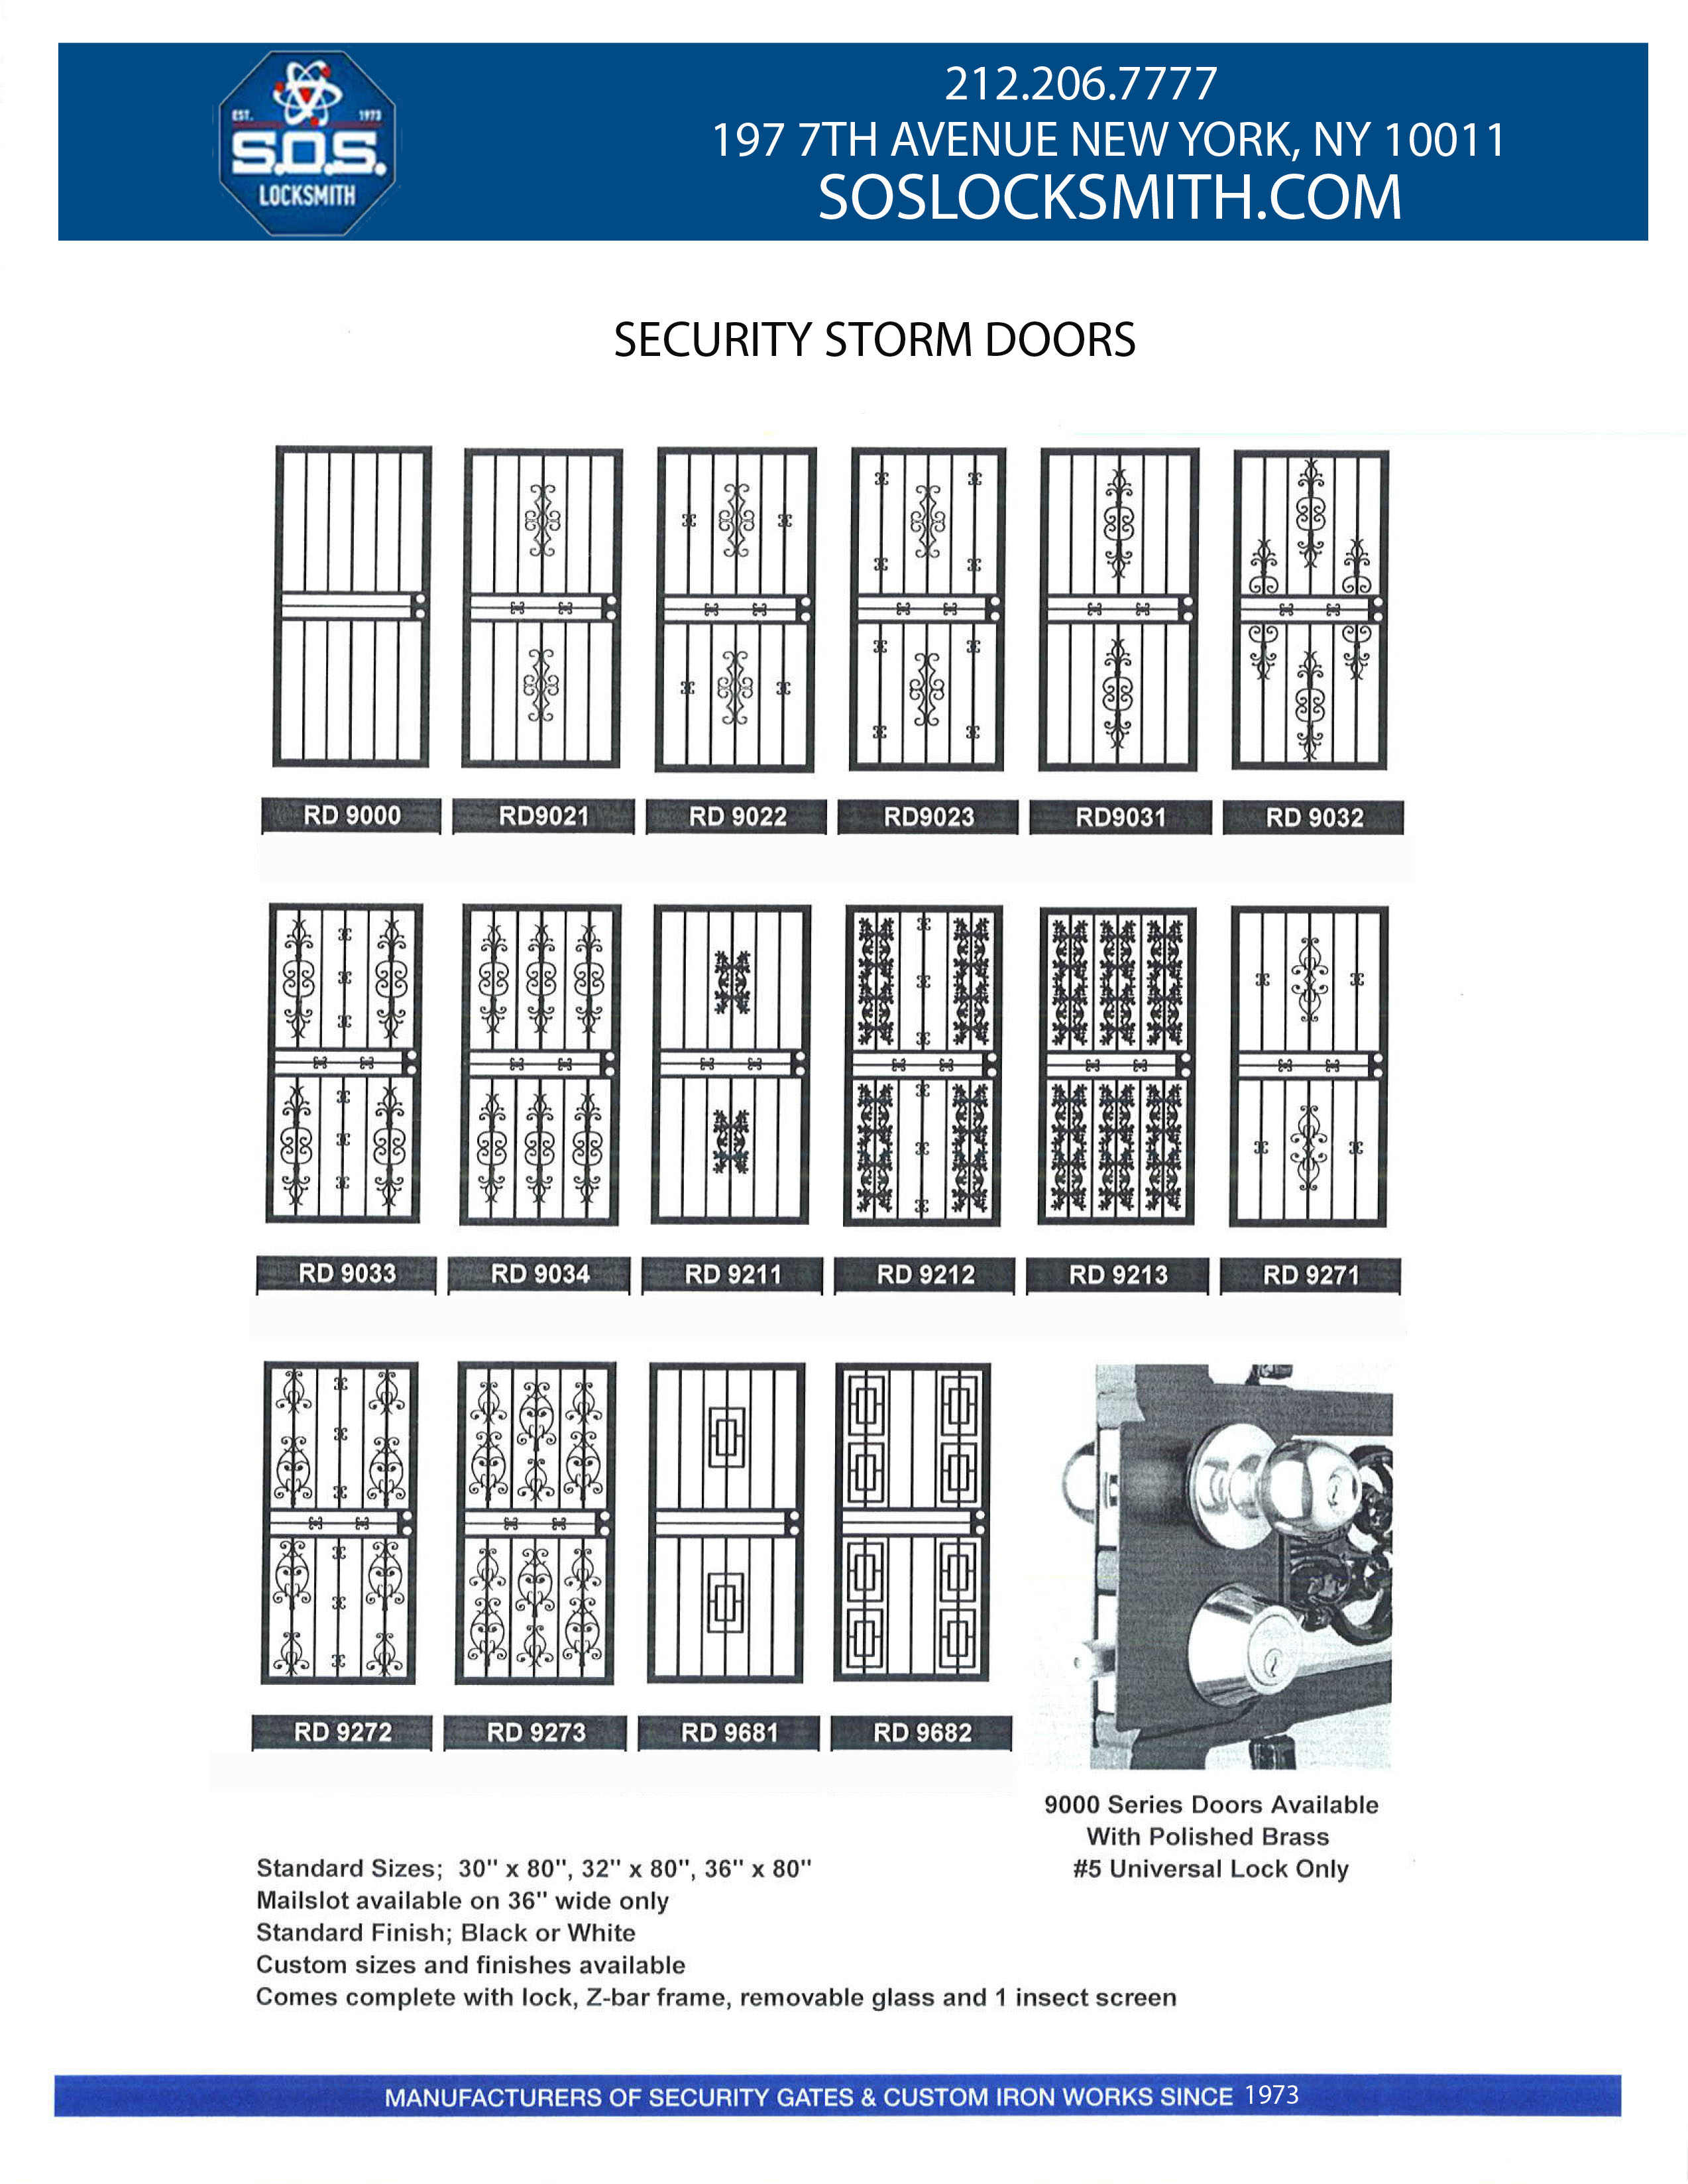 Storm door or Iron Work Doors NYC